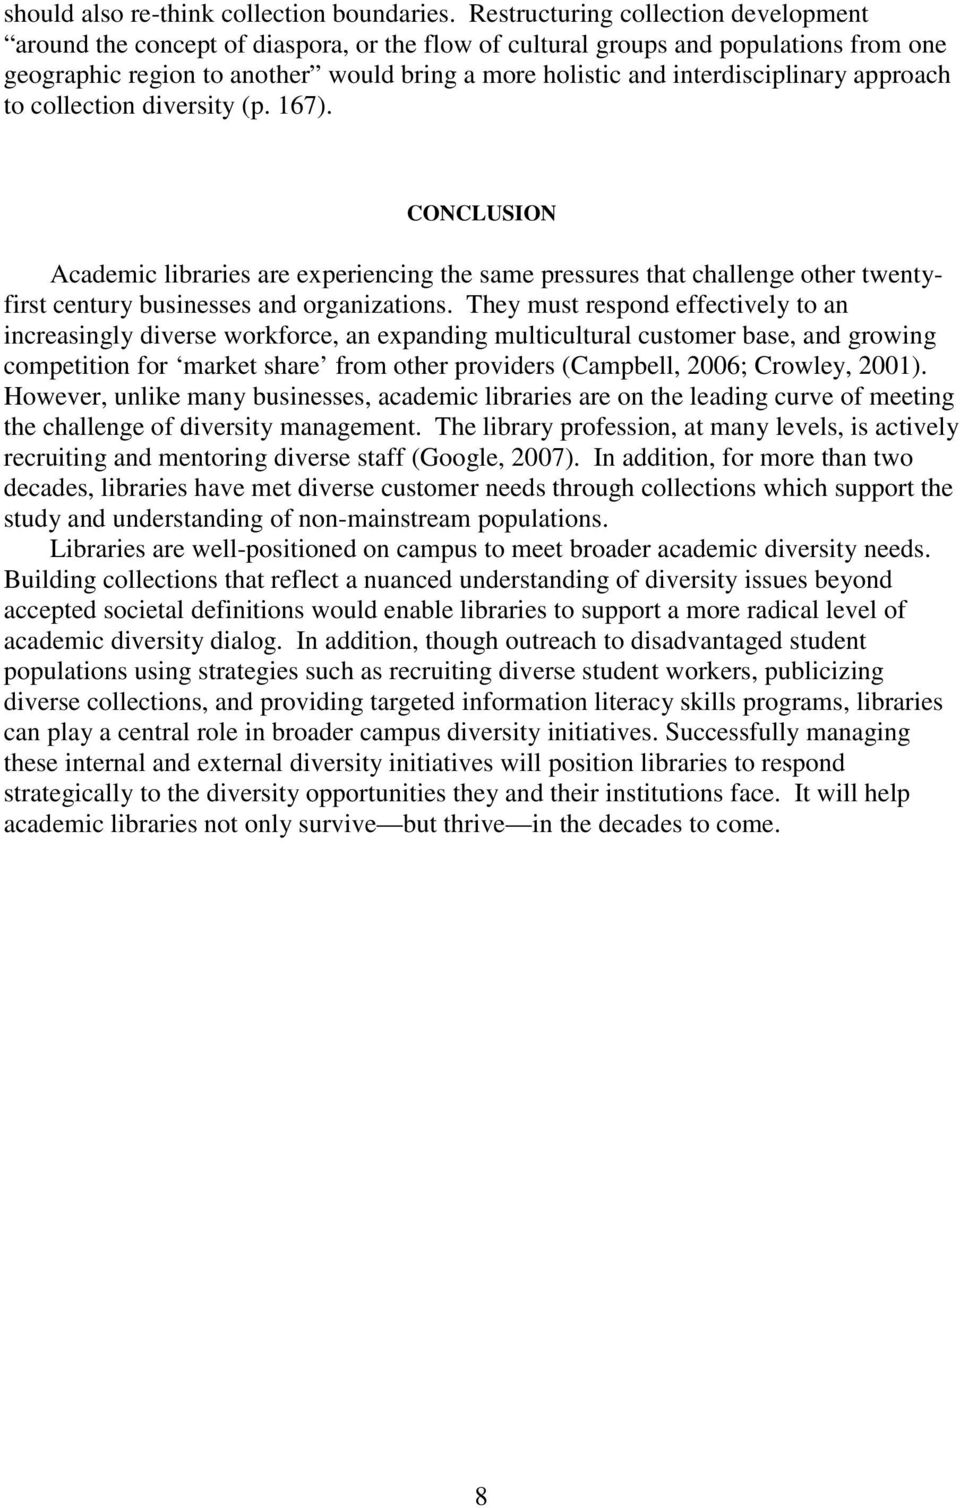 interdisciplinary approach to collection diversity (p. 167). CONCLUSION Academic libraries are experiencing the same pressures that challenge other twentyfirst century businesses and organizations.